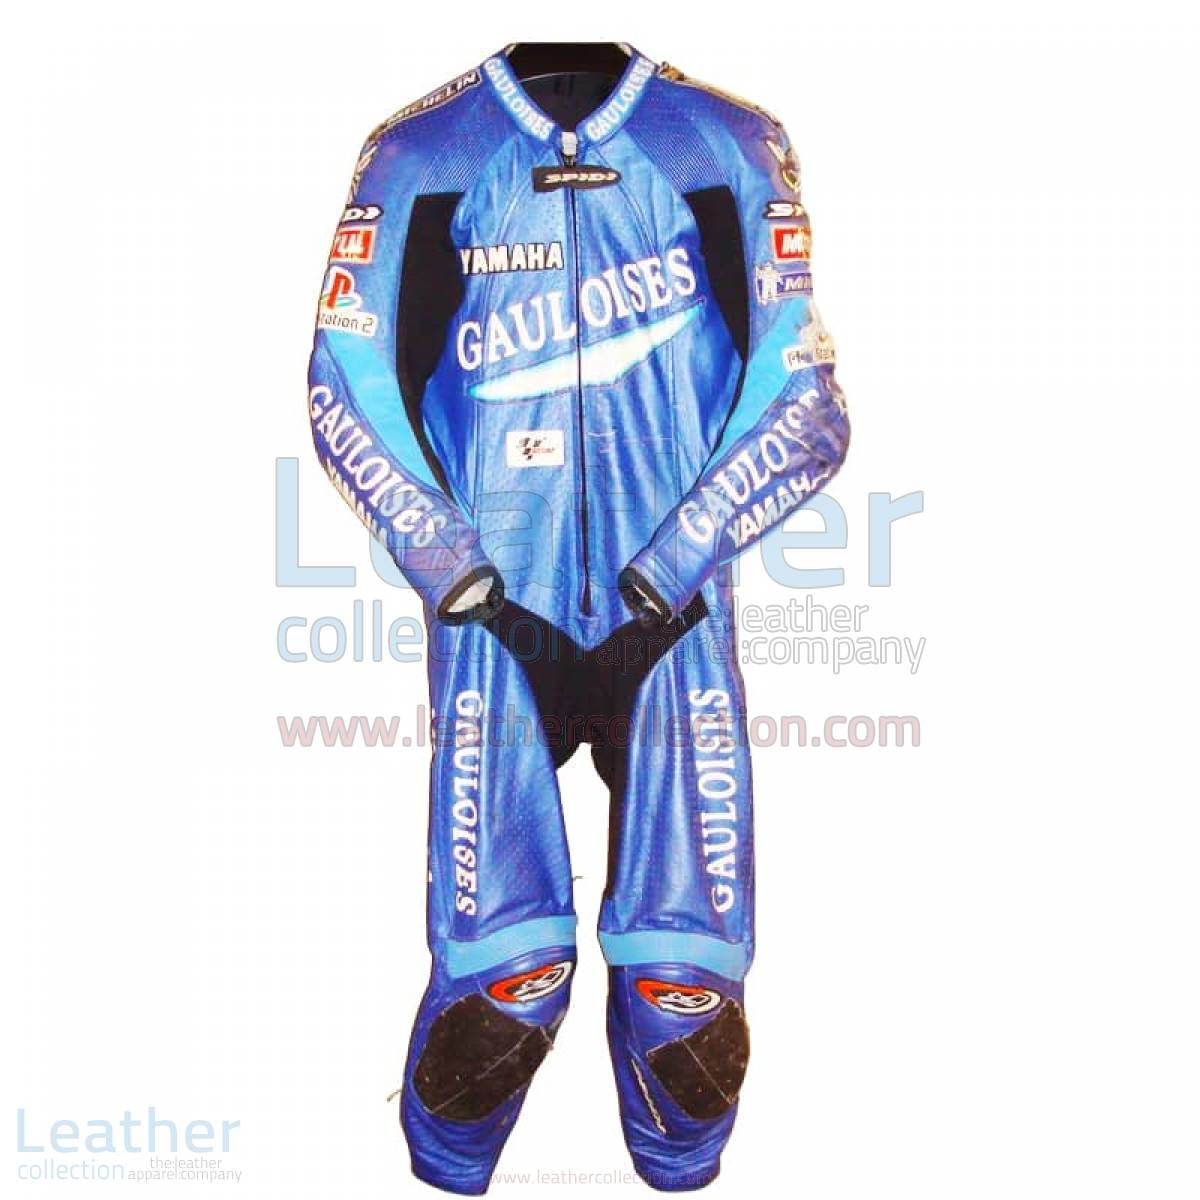 yamaha racing suit